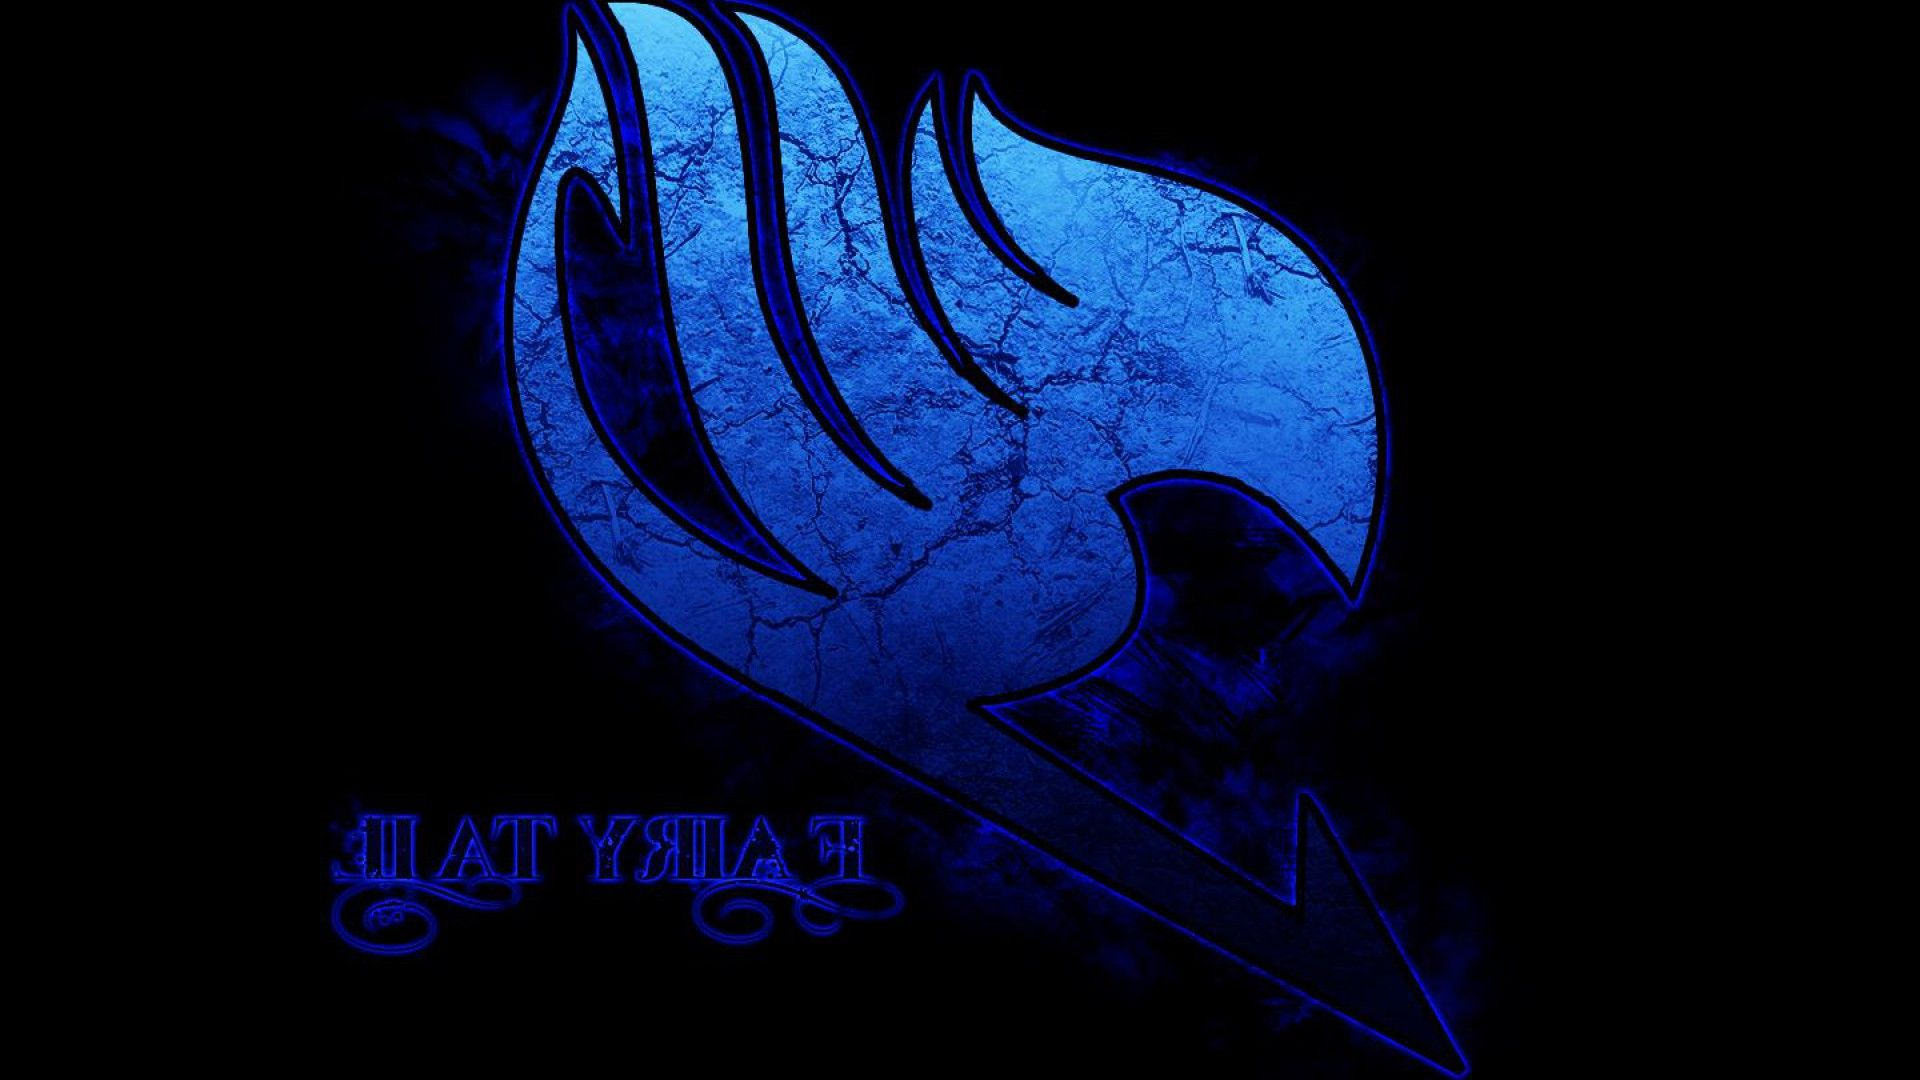 Wallpapers For Fairy Tail Logo Wallpaper 1920x1080 1920x1080